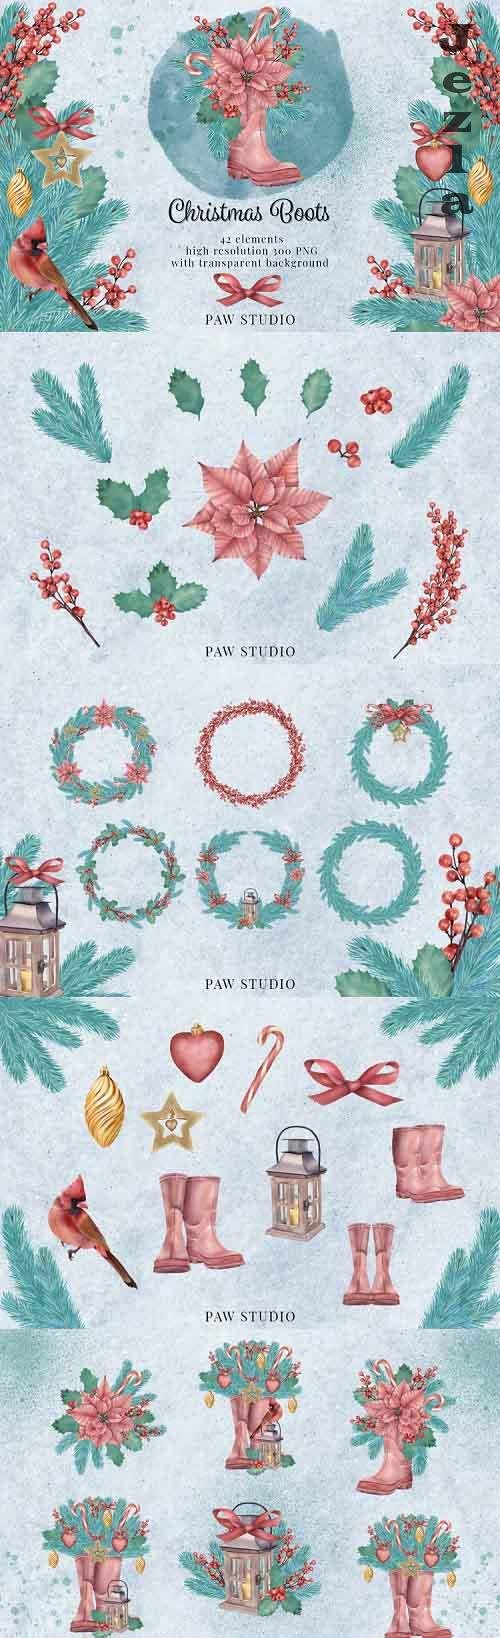 Christmas Clipart Wreaths New Year Winter Holiday Card - 847988